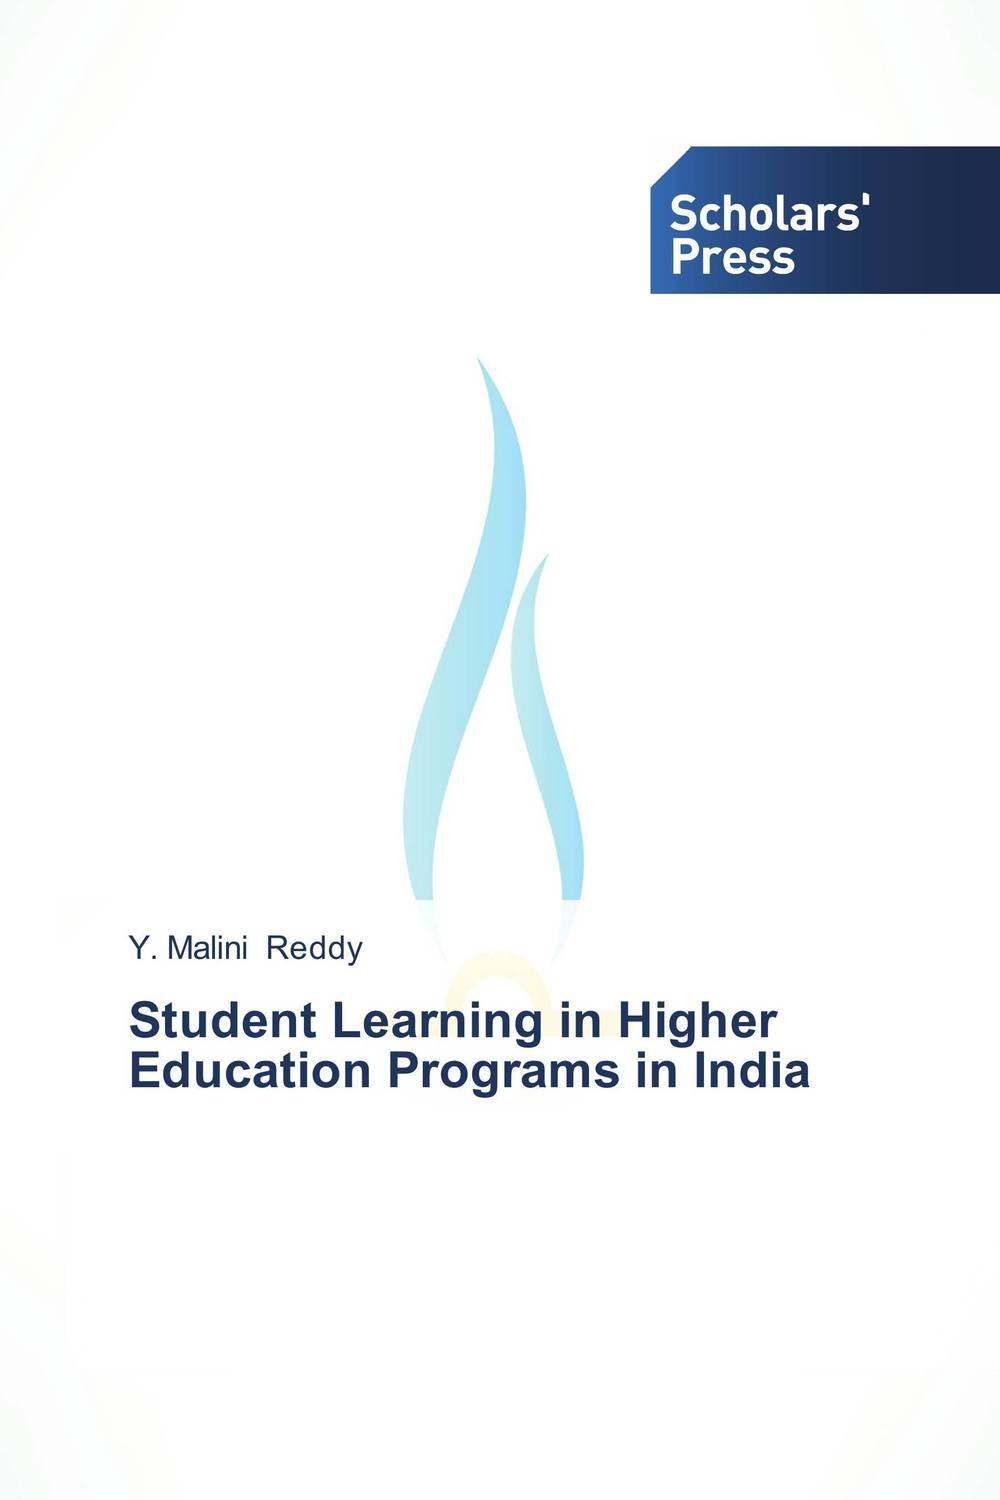 Student Learning in Higher Education Programs in India deborah meier differentiated assessment how to assess the learning potential of every student grades 6 12